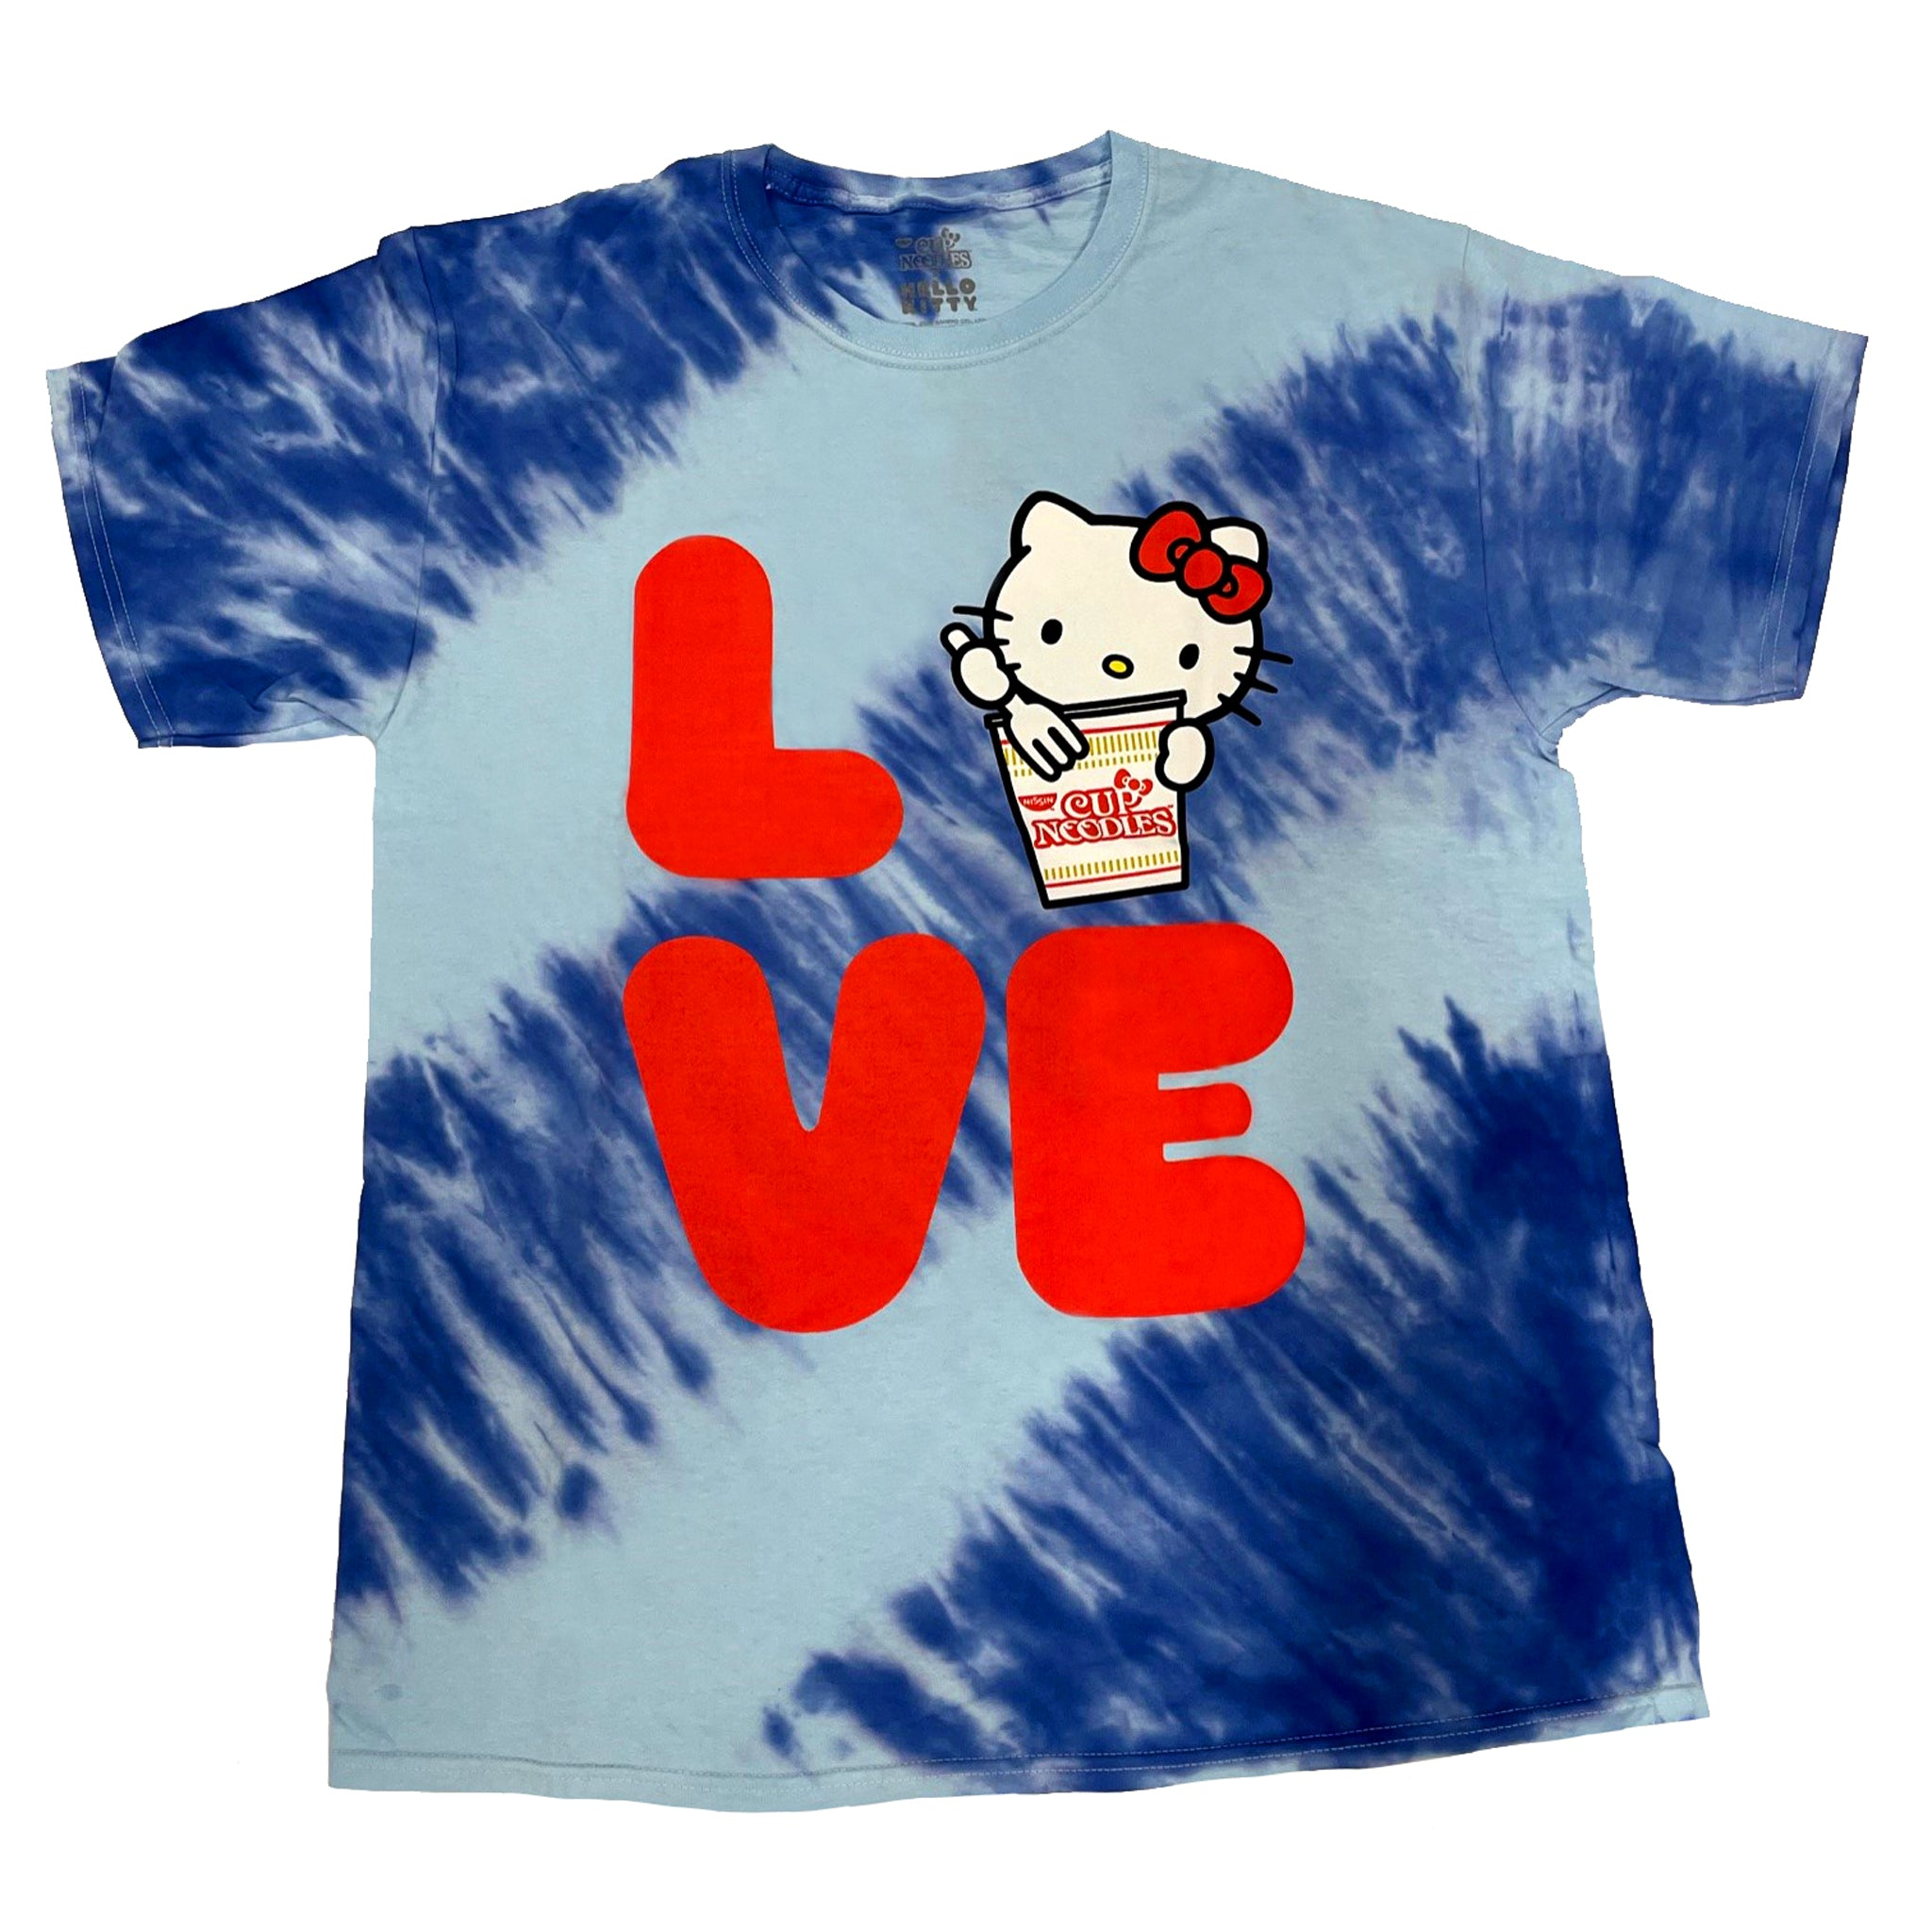 Cup Noodles x Hello Kitty Blue & White Tie Die Short Sleeve T Shirt